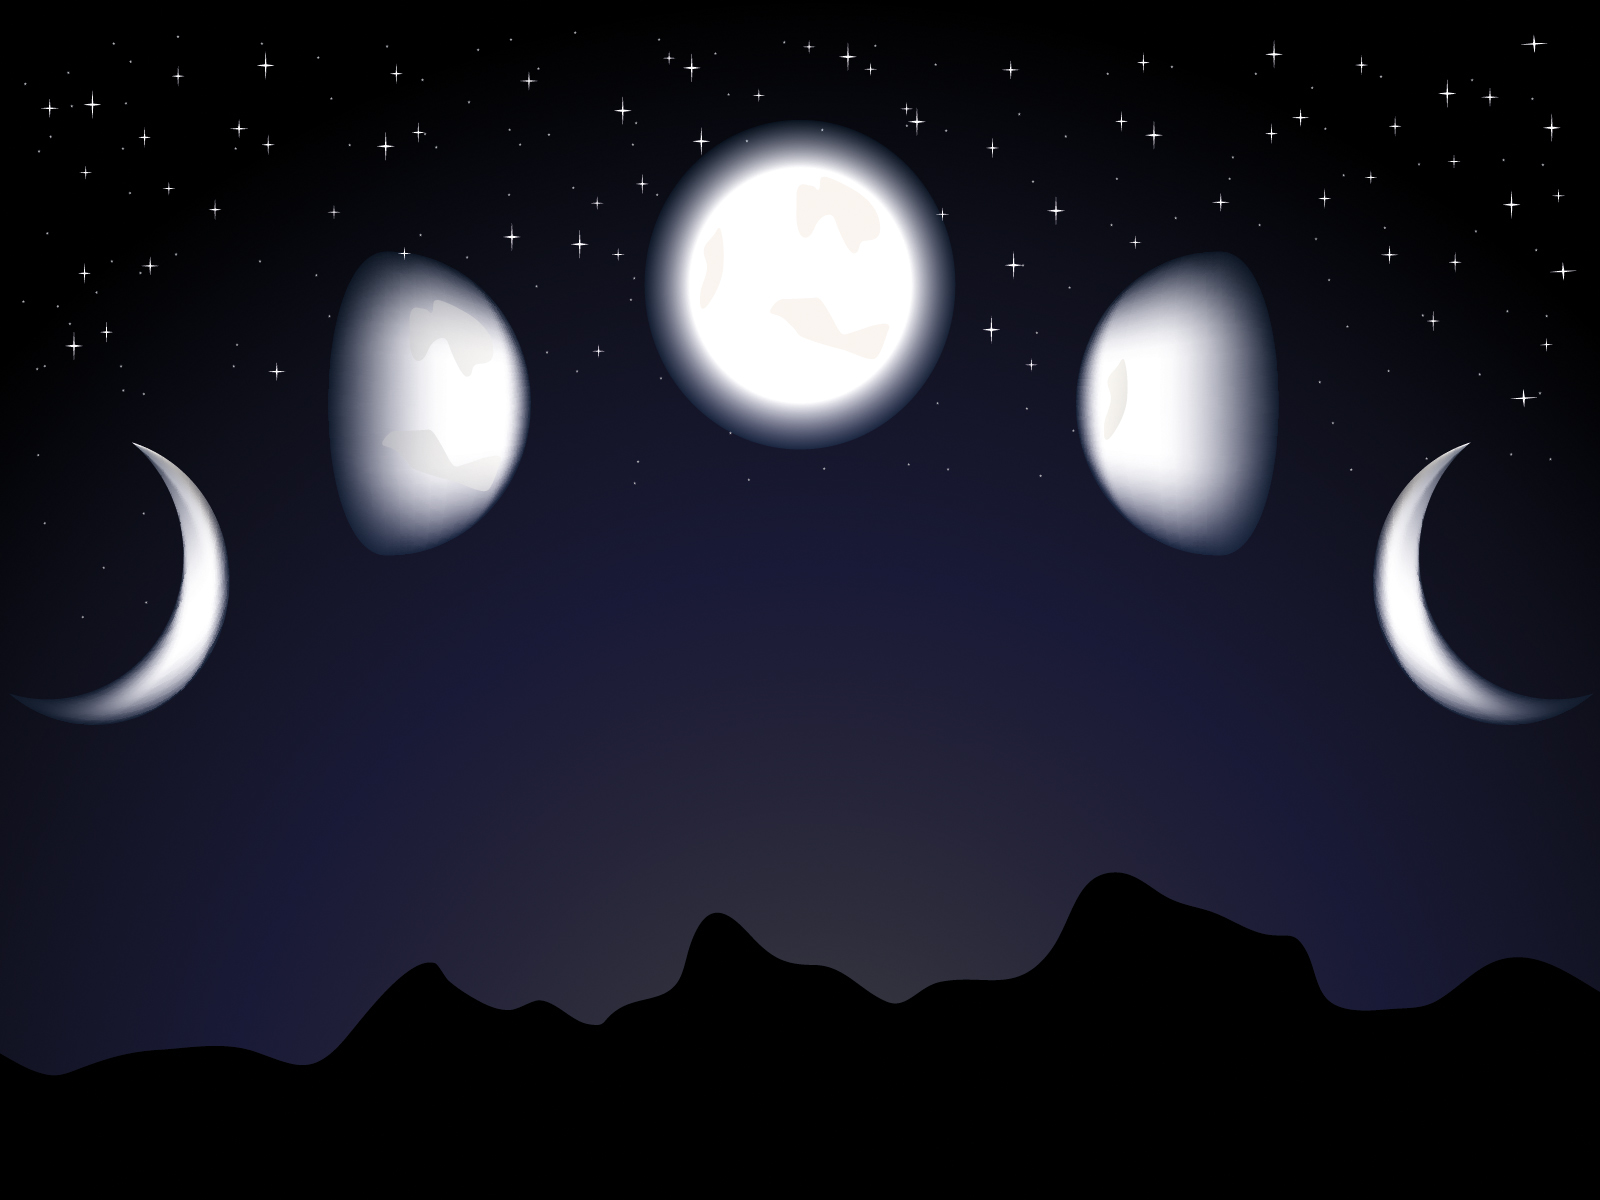 Moon and Night PPT Backgrounds